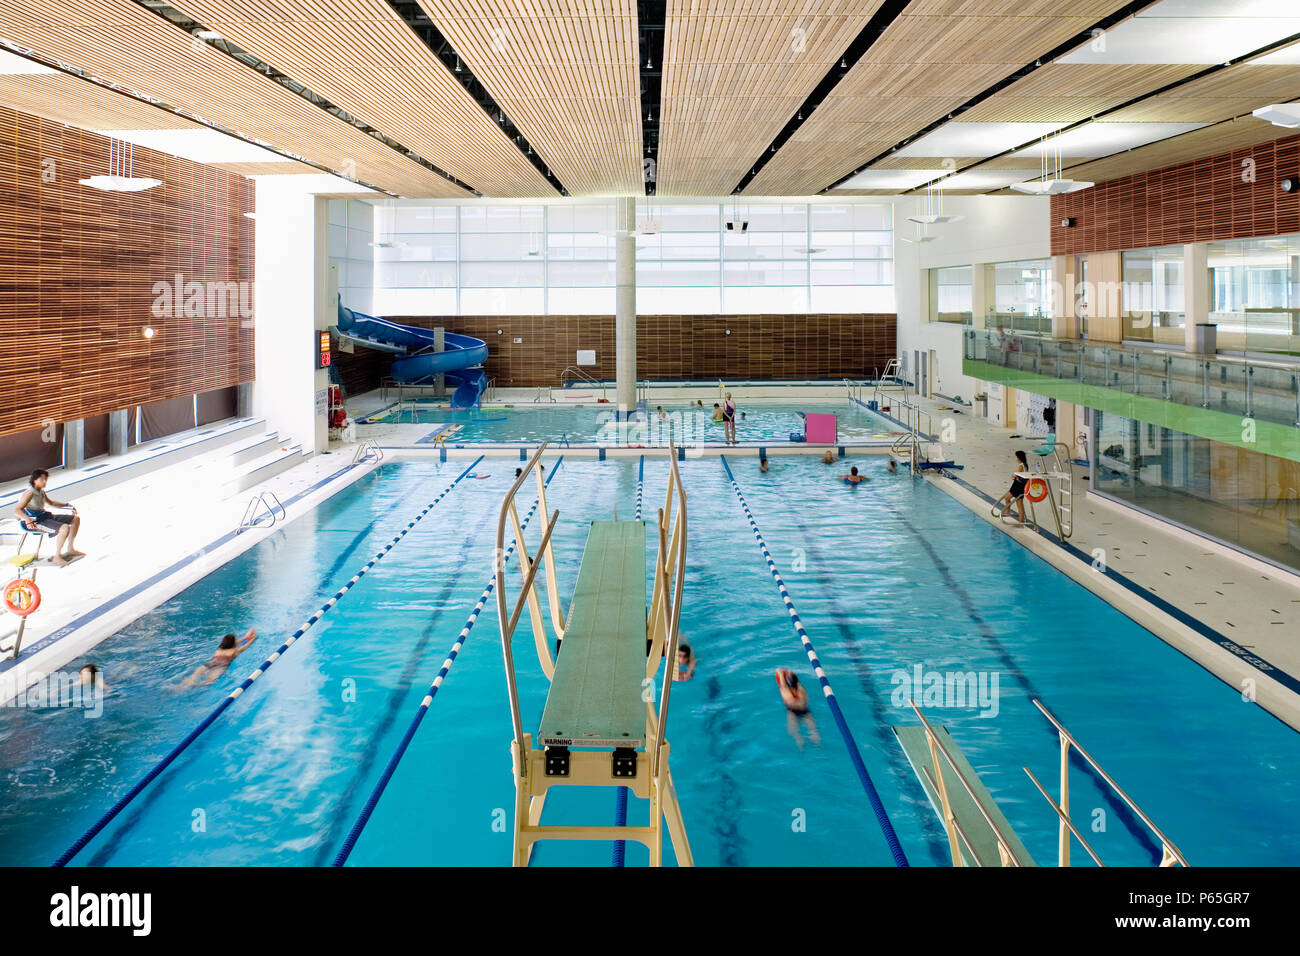 Indoor Swimming Pool With Diving Board Stock Photos & Indoor